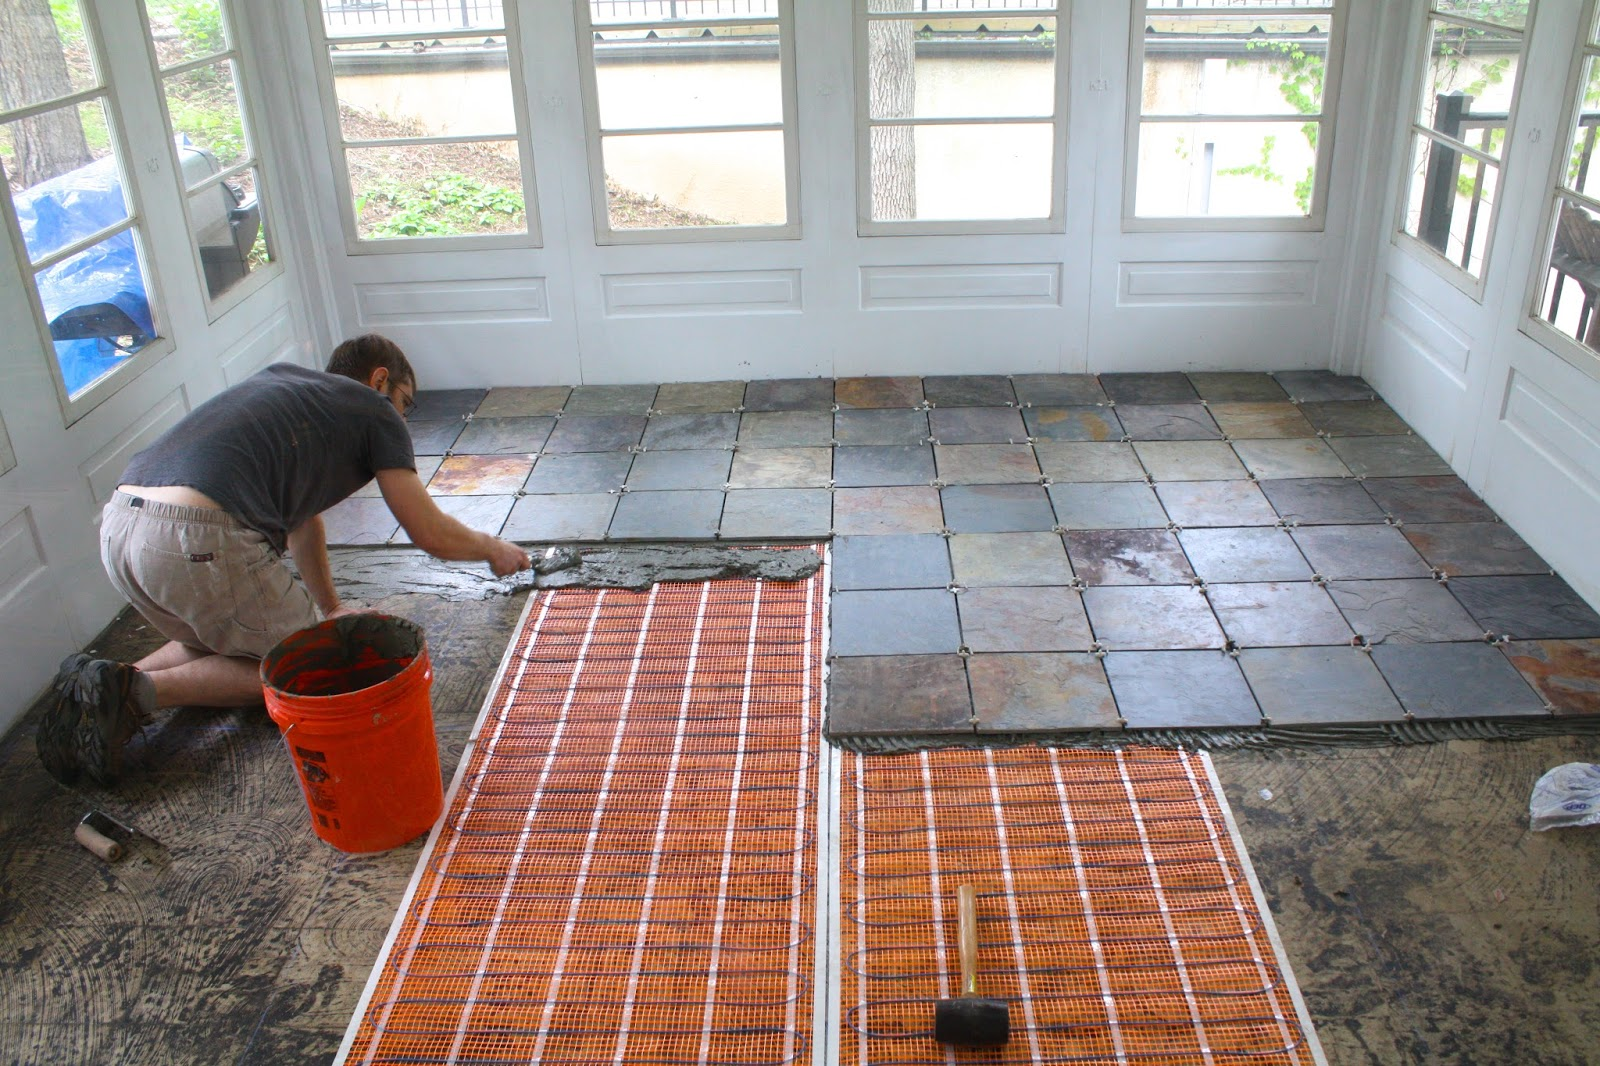 Laying down the tiles took several weekends of during-naptime work ...